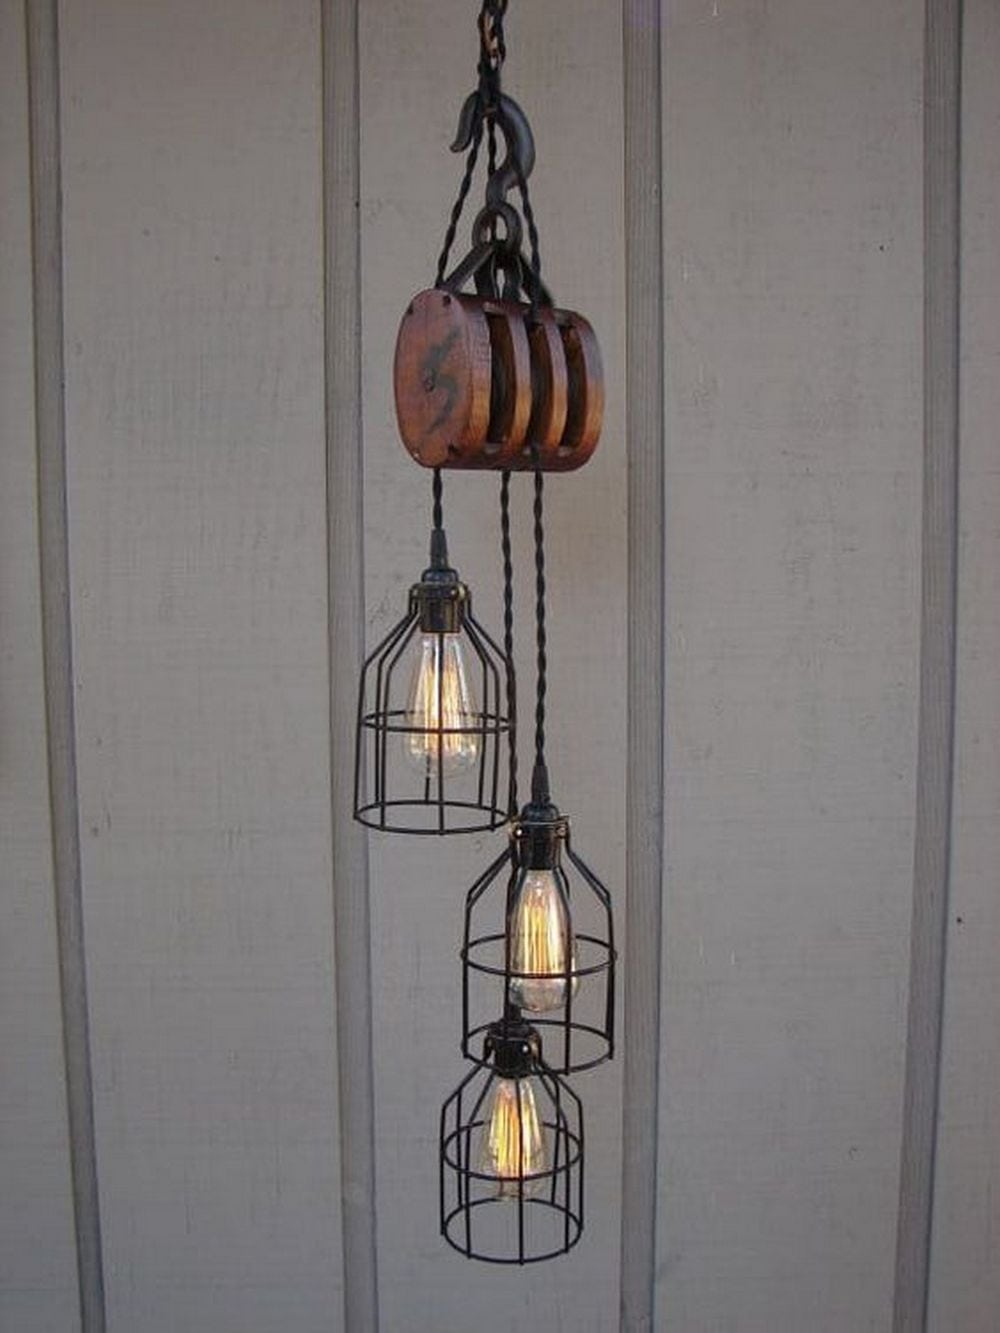 Making your own vintage lighting ensures that it's safe and not a fire hazard.